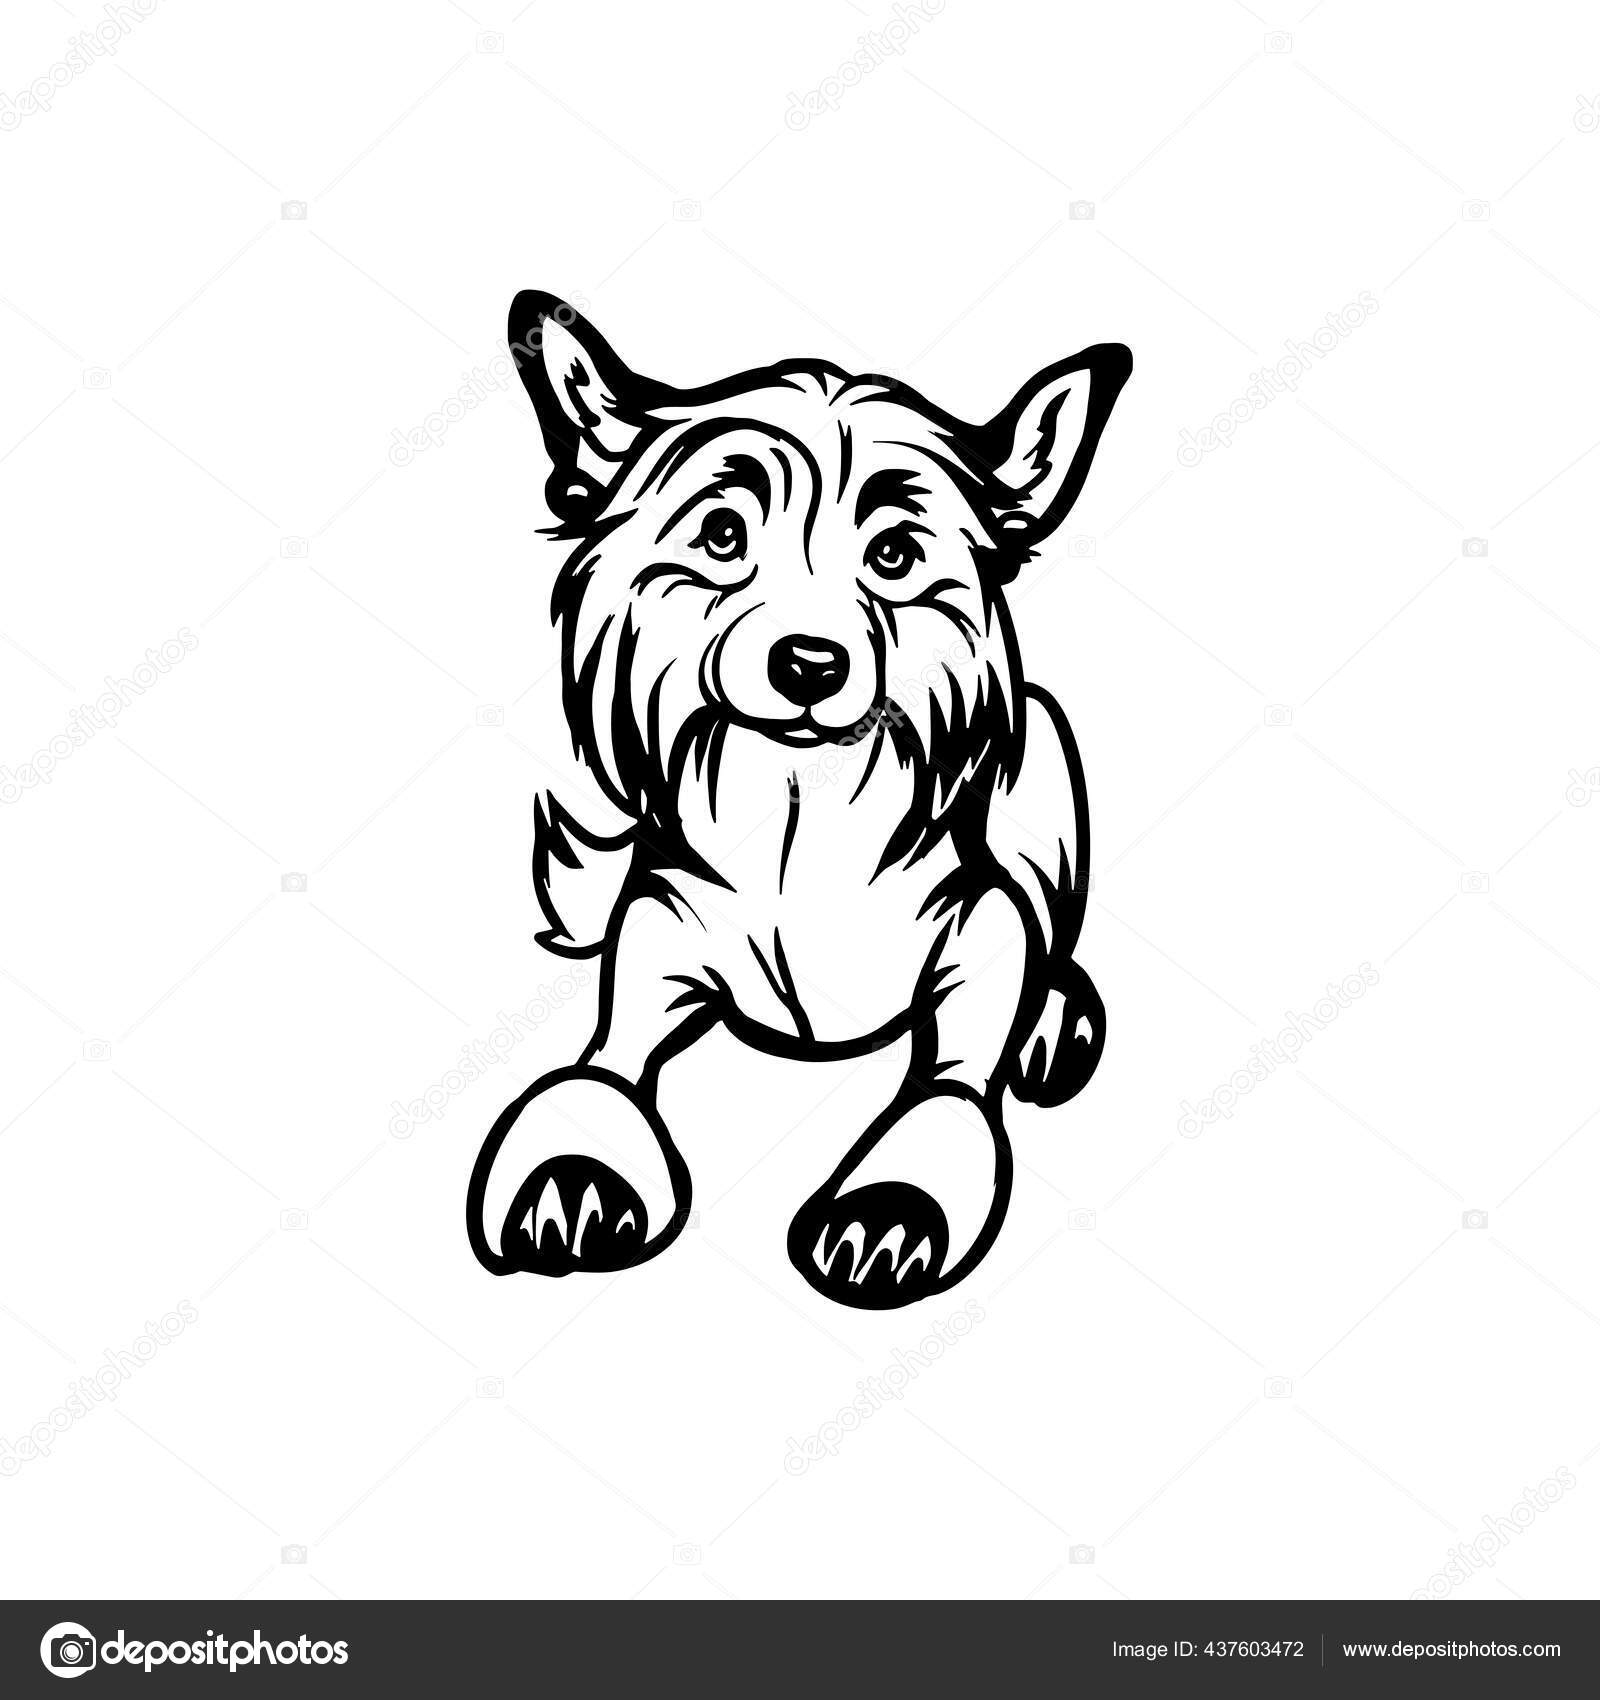 eps svg dxf INSTANT DIGITAL DOWNLOAD Vector Dog Silhouette Chinese Shar-Pei png